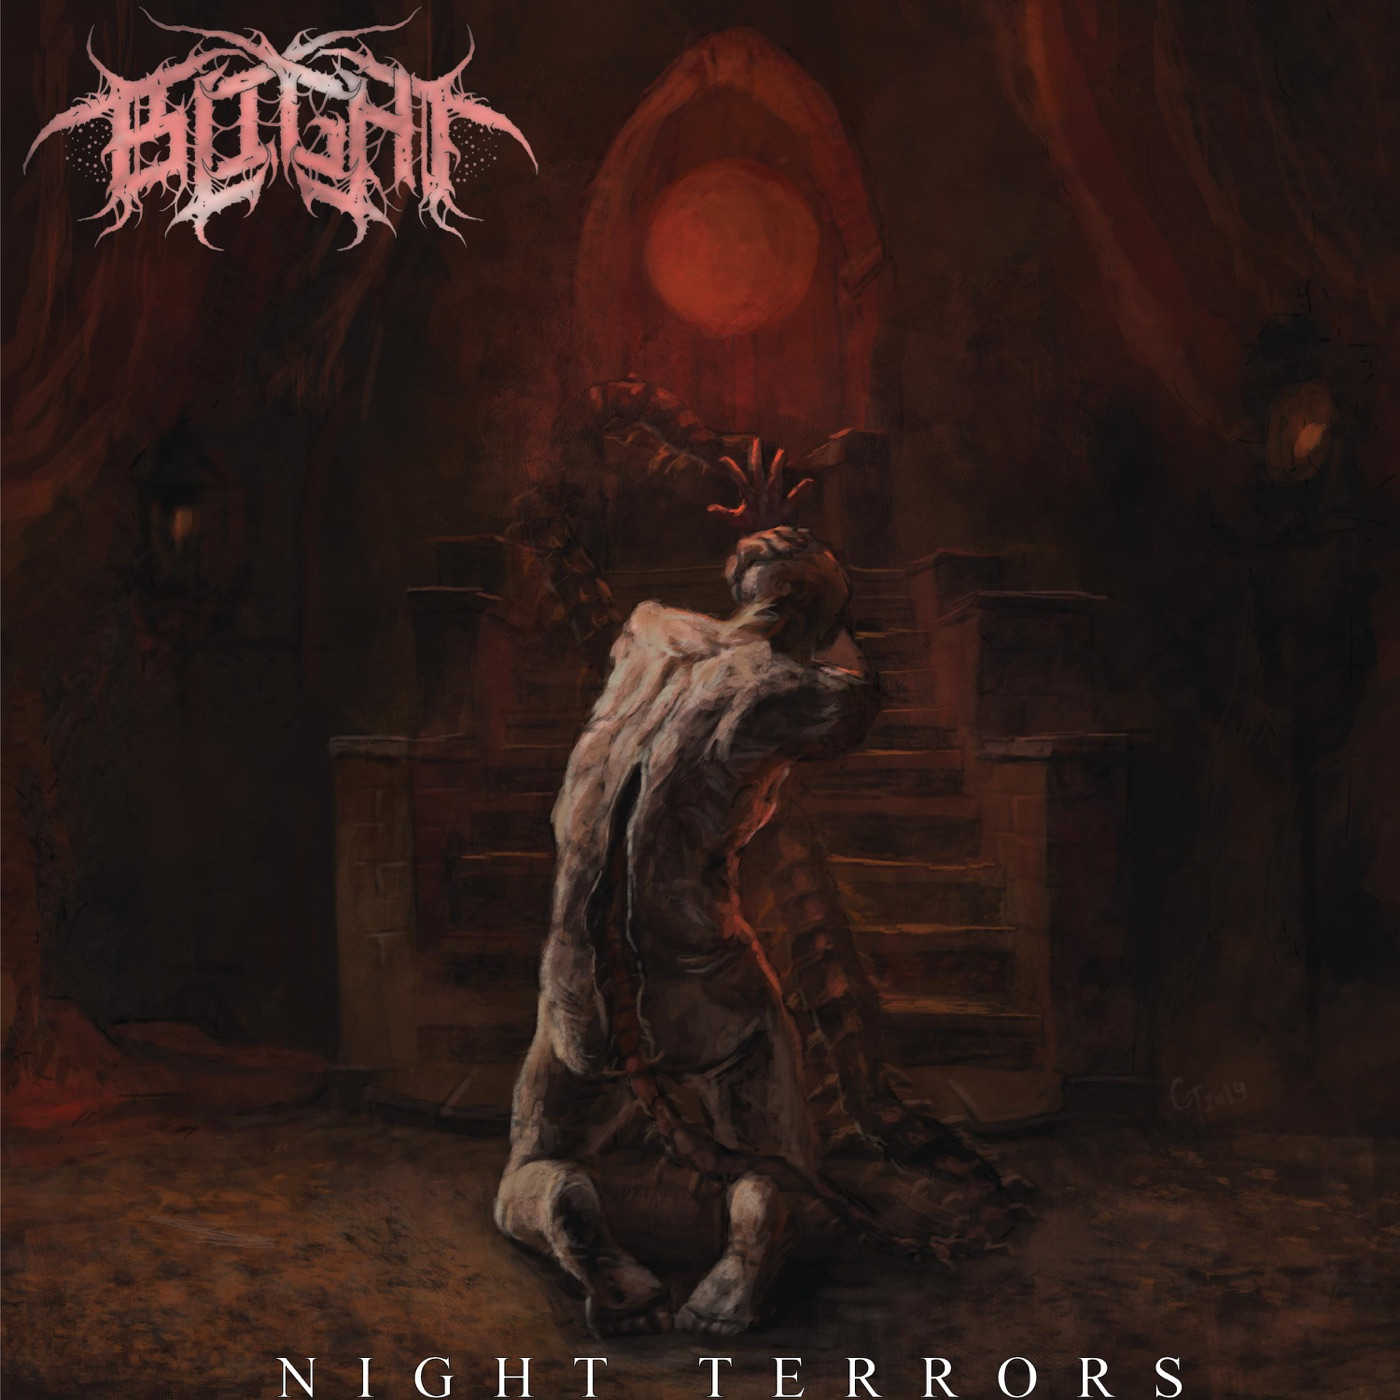 Blight - Night Terrors [EP] (2019)